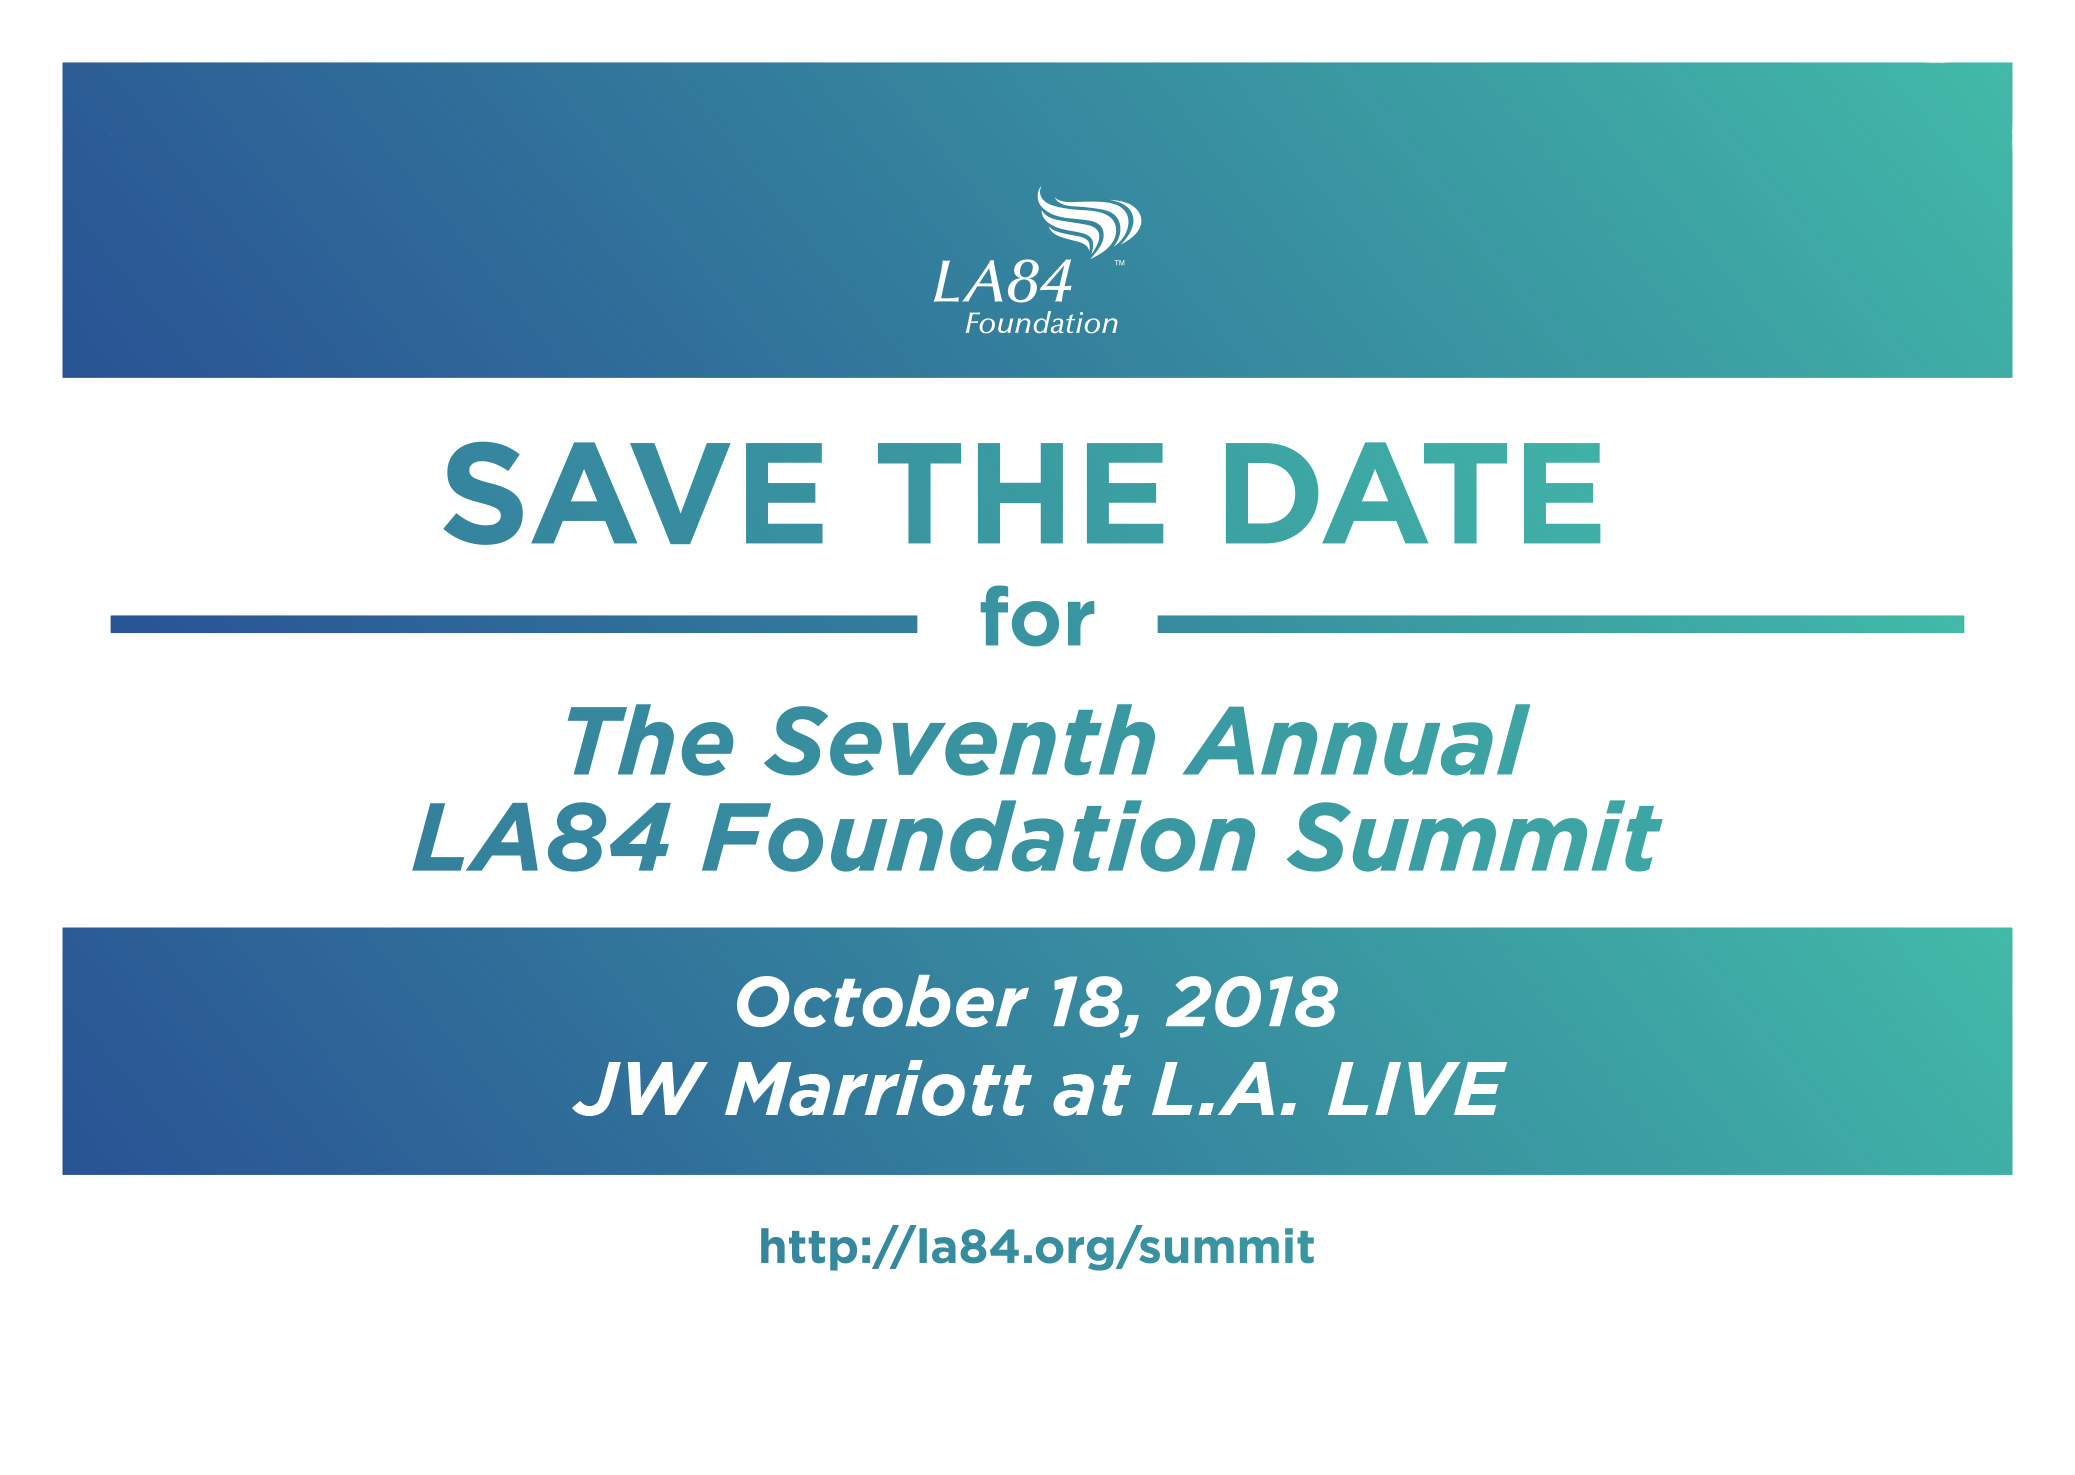 2018 Summit Save the Date